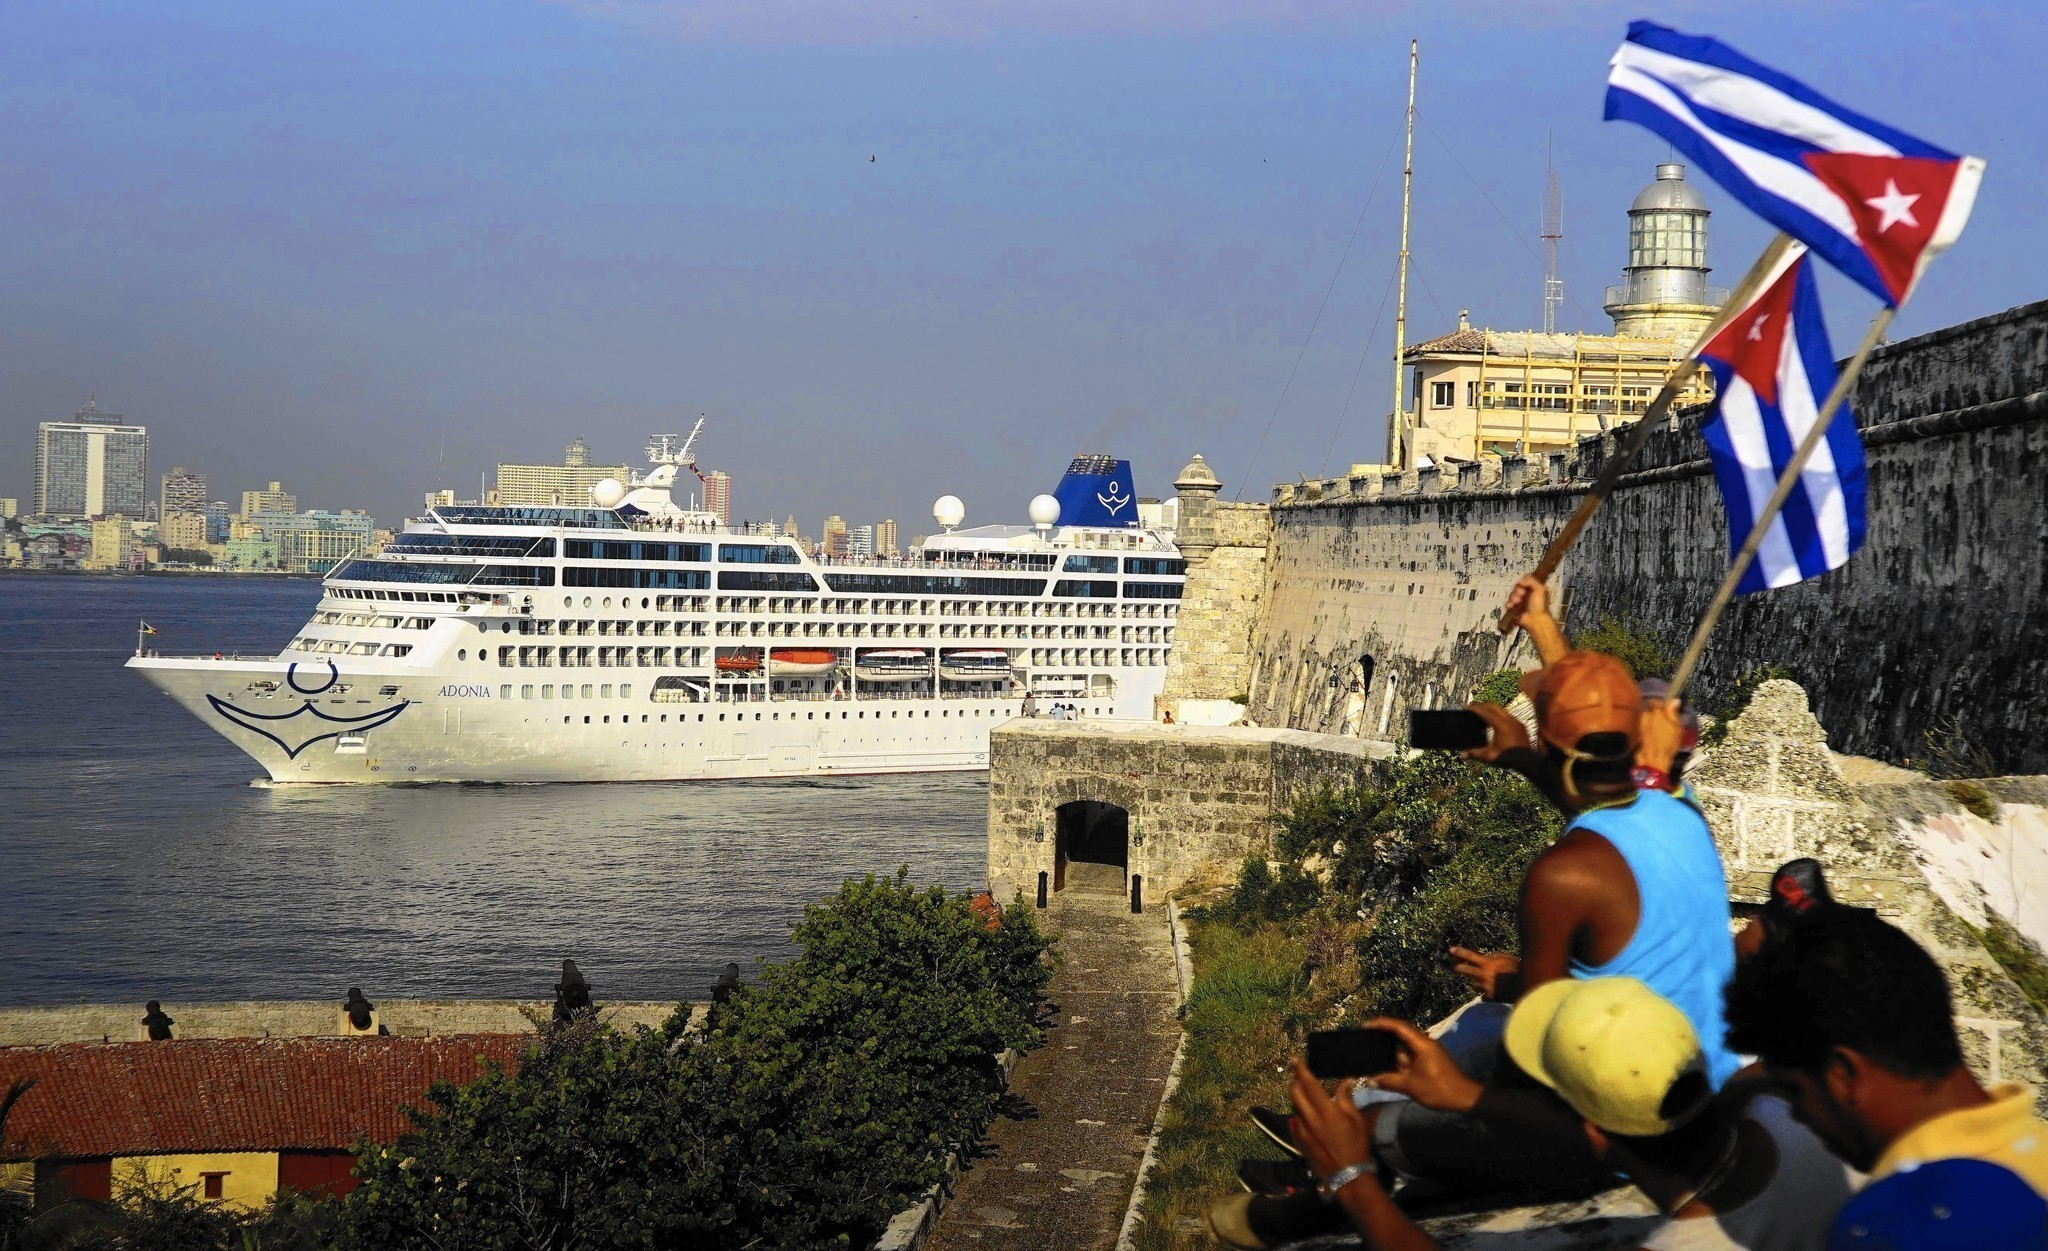 Norwegian Royal Caribbean Expand Cuba Sailings Through End Of The Year Orlando Sentinel